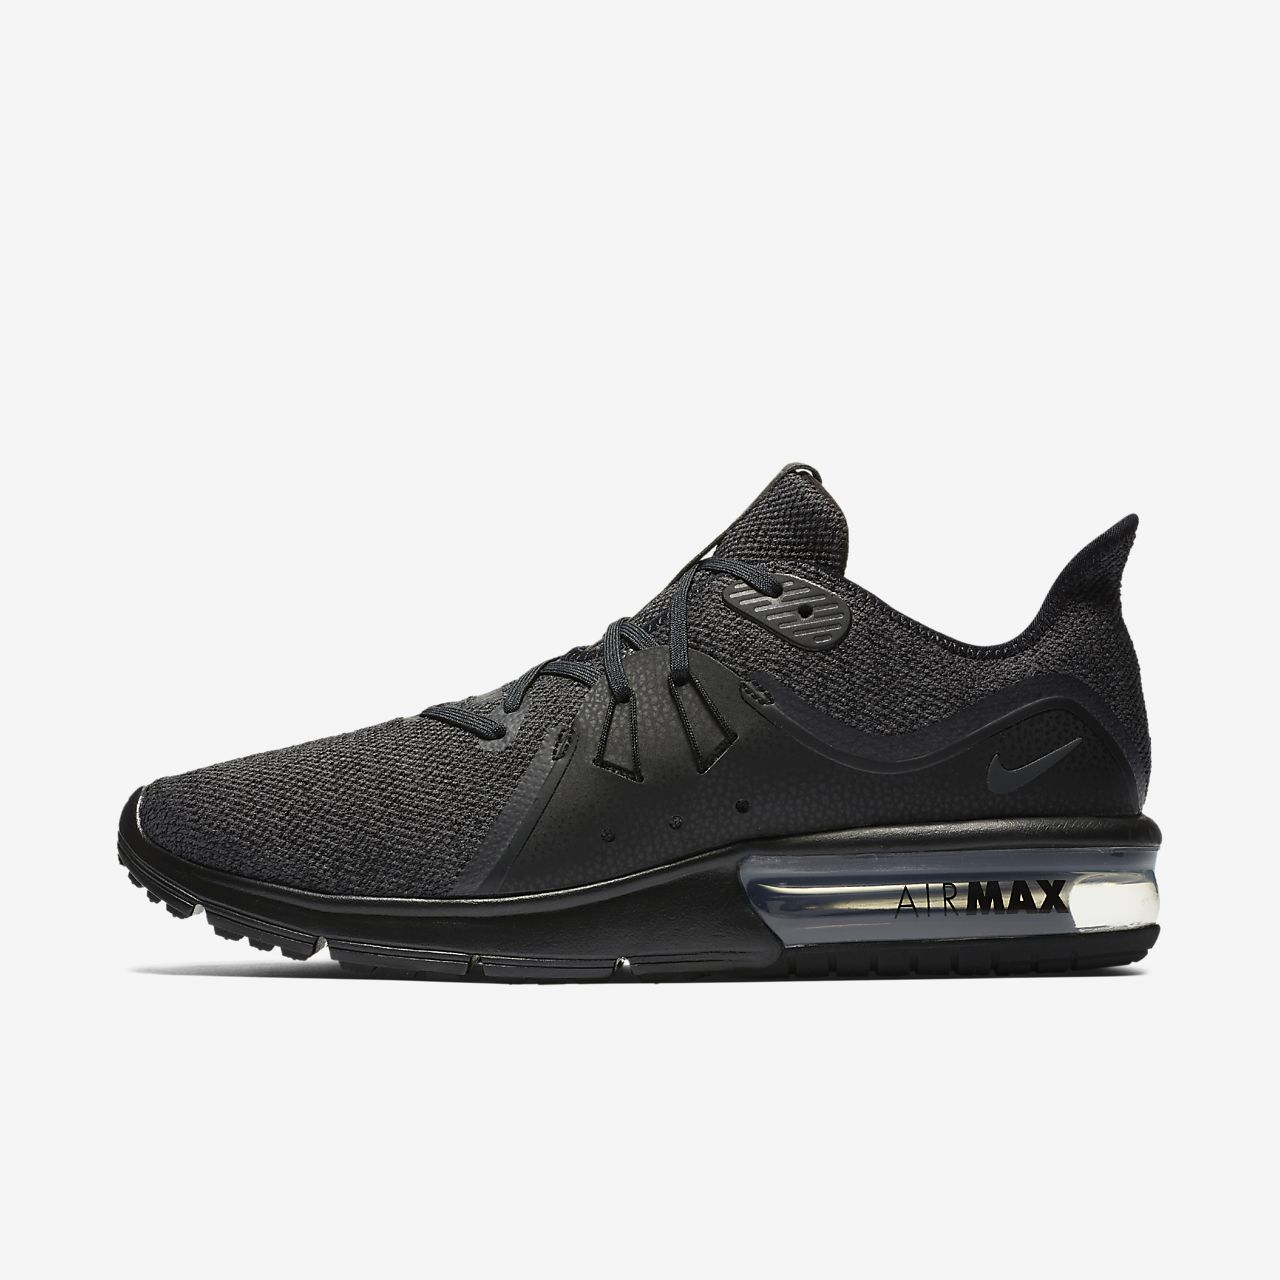 men's nike air max 90 print running shoes nz